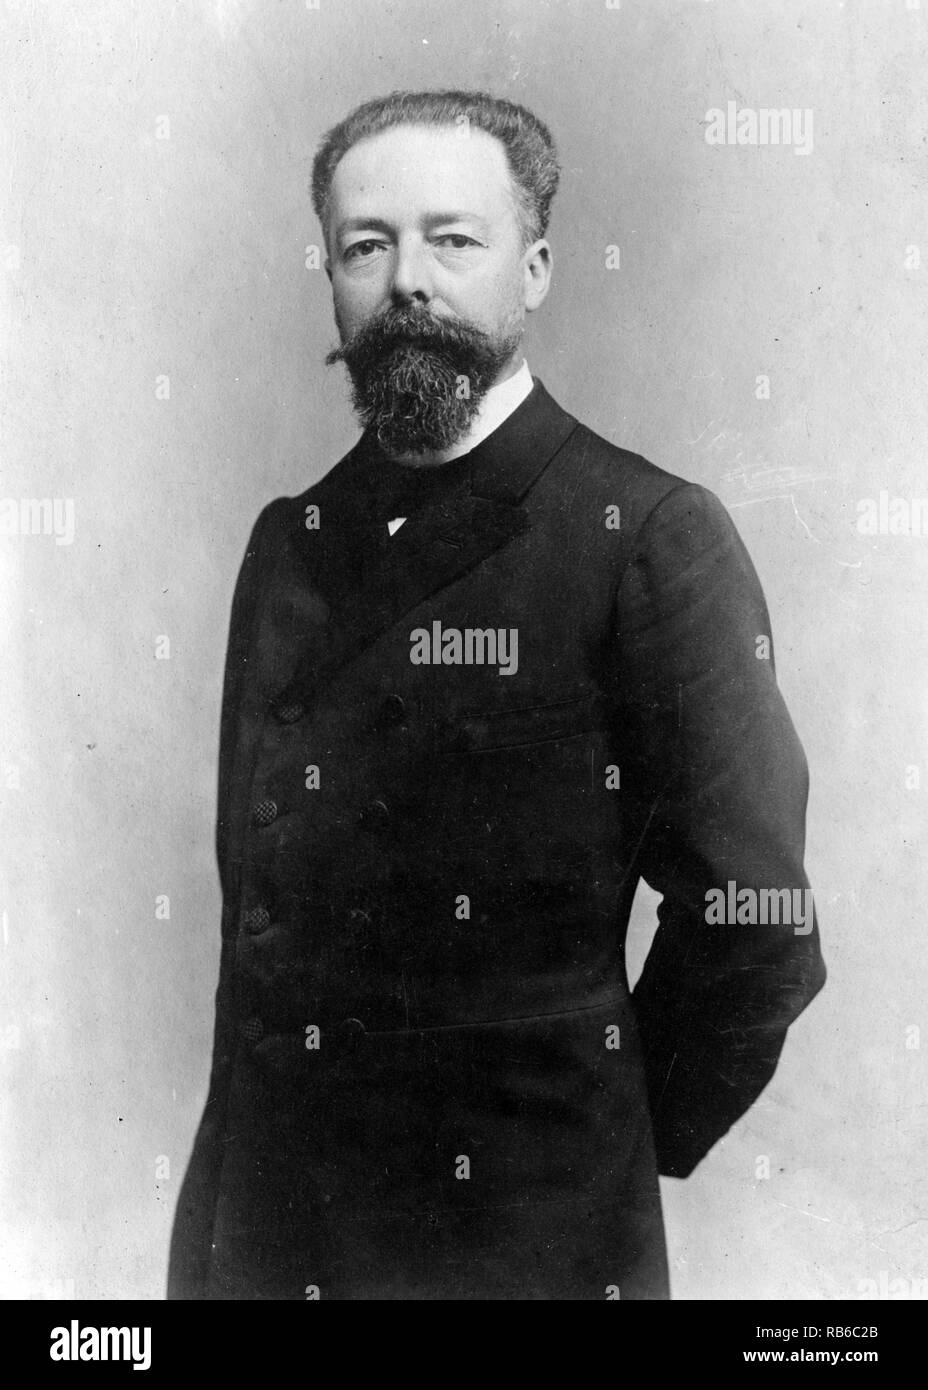 Paul Doumer, Joseph Athanase Gaston Paul Doumer, (1857 – 1932) President of France from 1931 until his assassination on 1932 - Stock Image